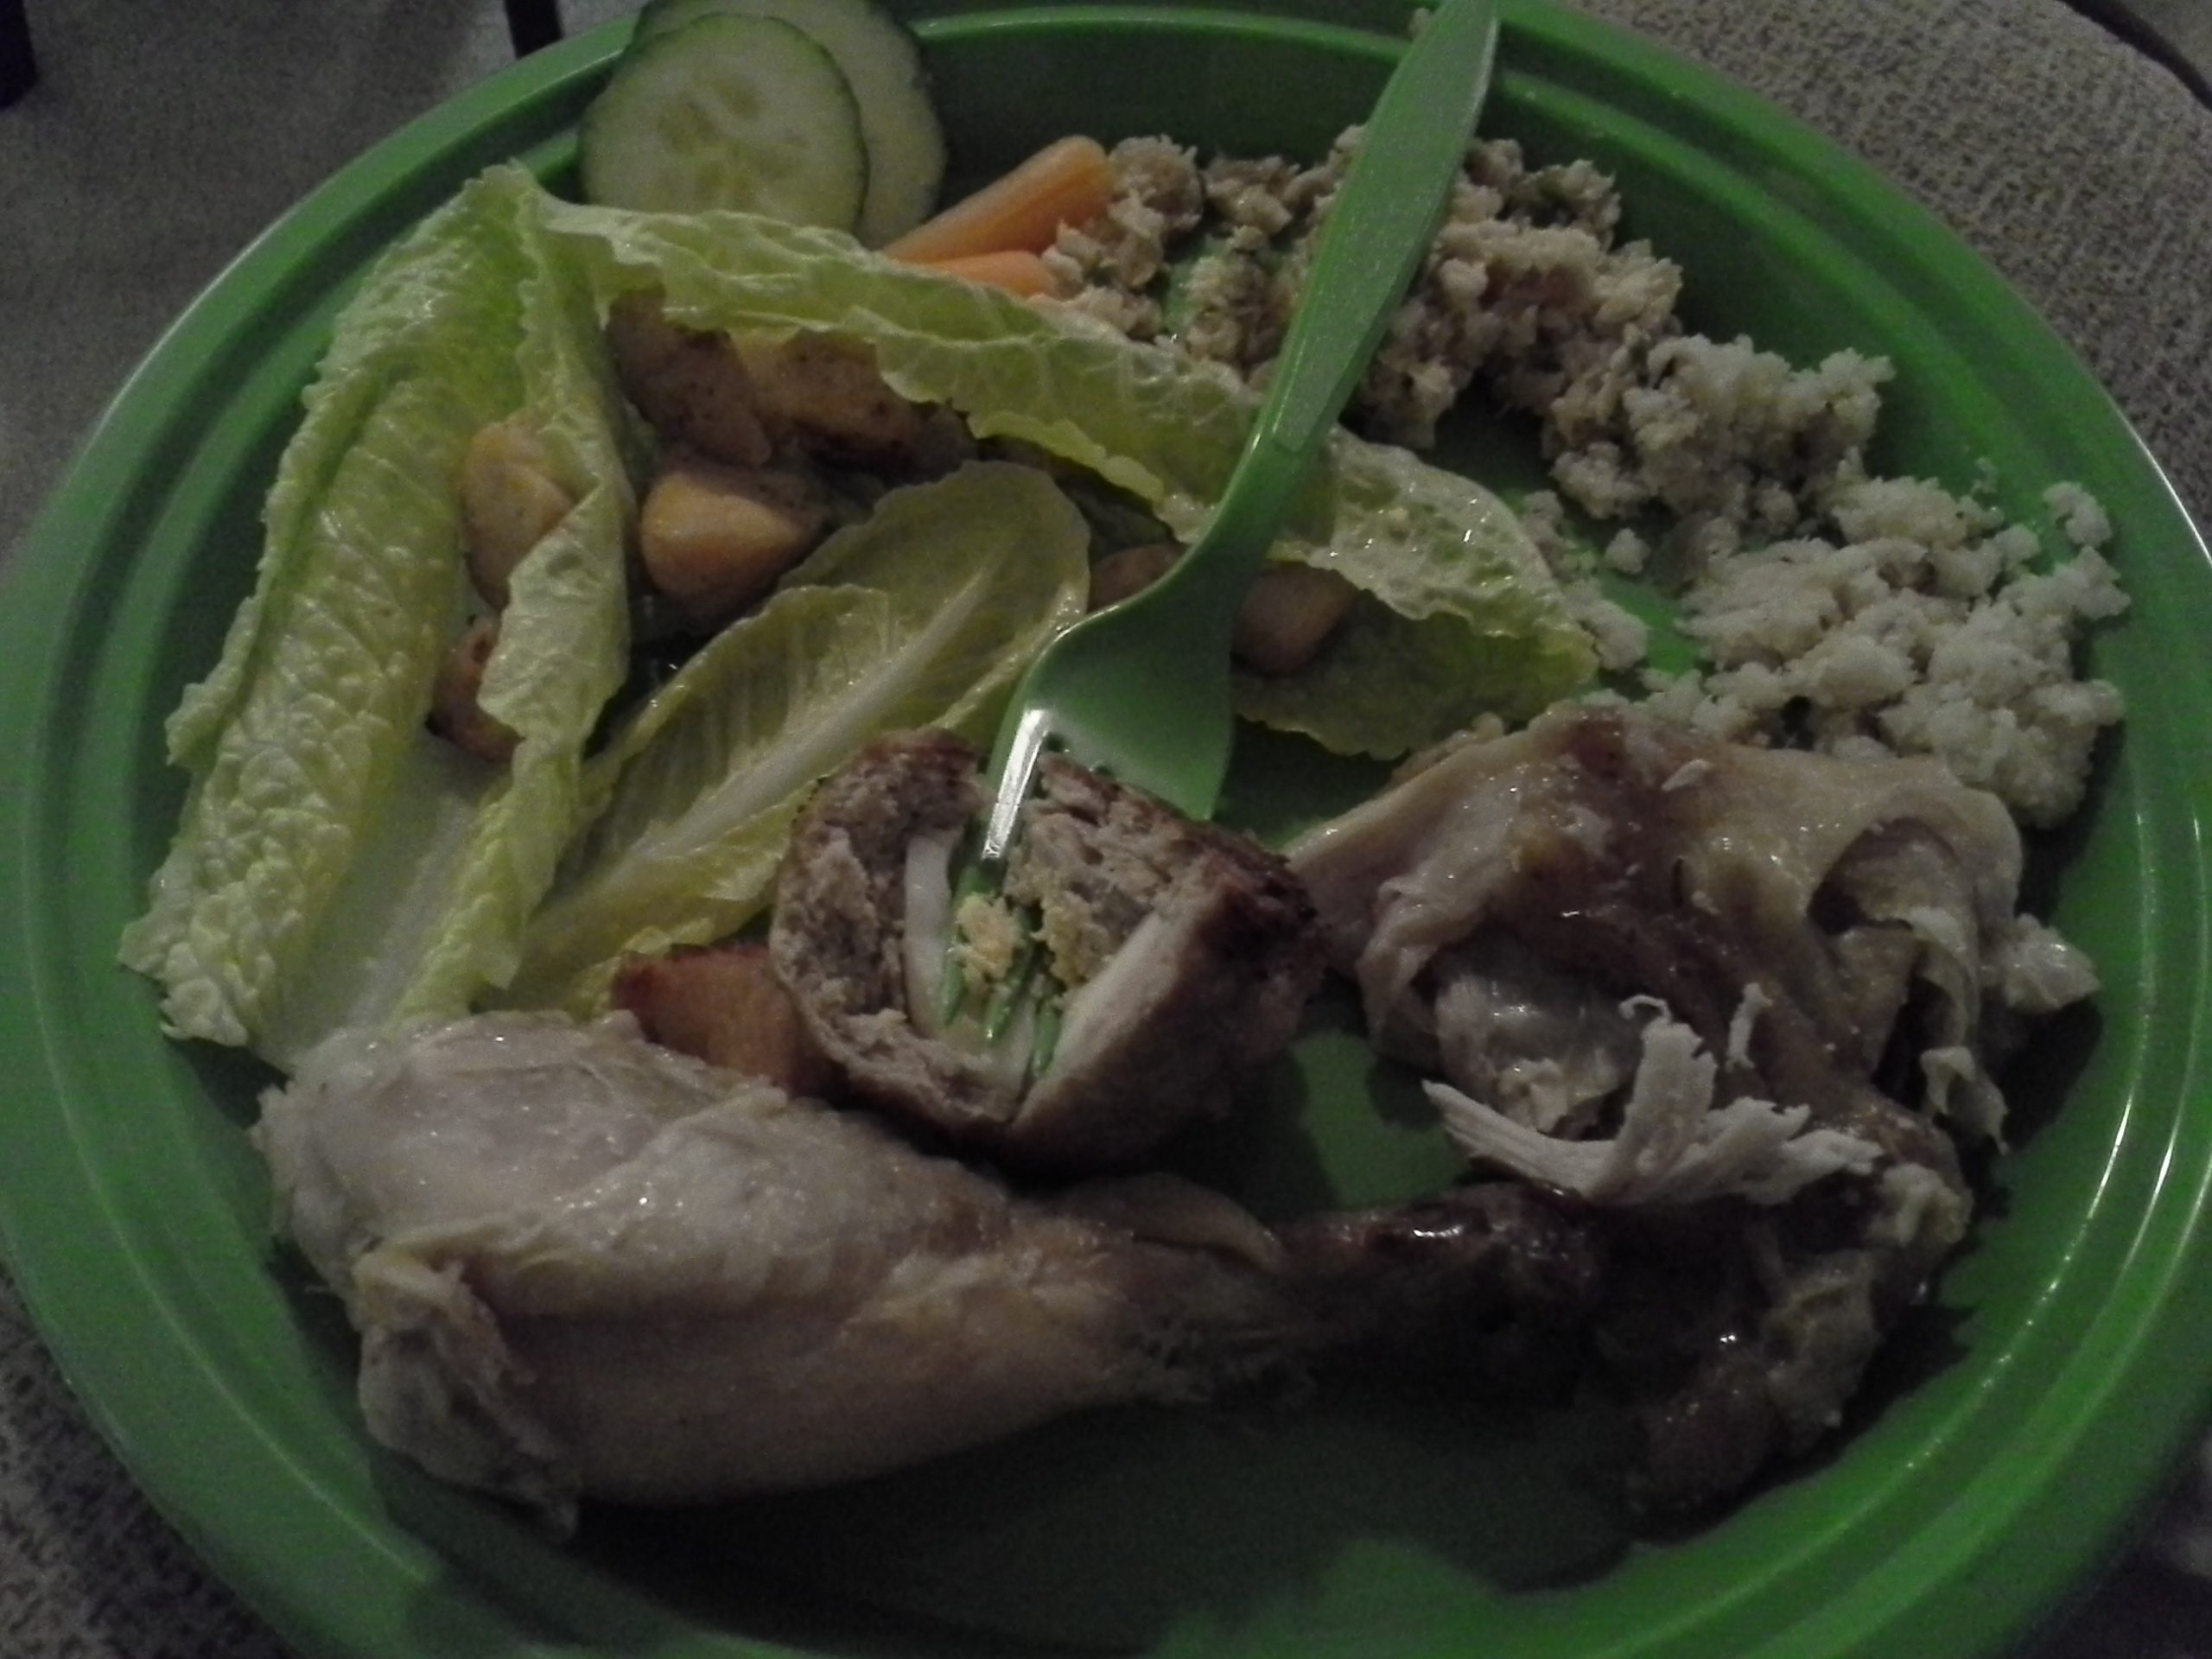 Dinner: 8:30 p.m. | Chicken, turkey sausage, egg, shrimp, carrots, cucumbers, celery, spinach, artichokes, olive oil, almonds, etc.